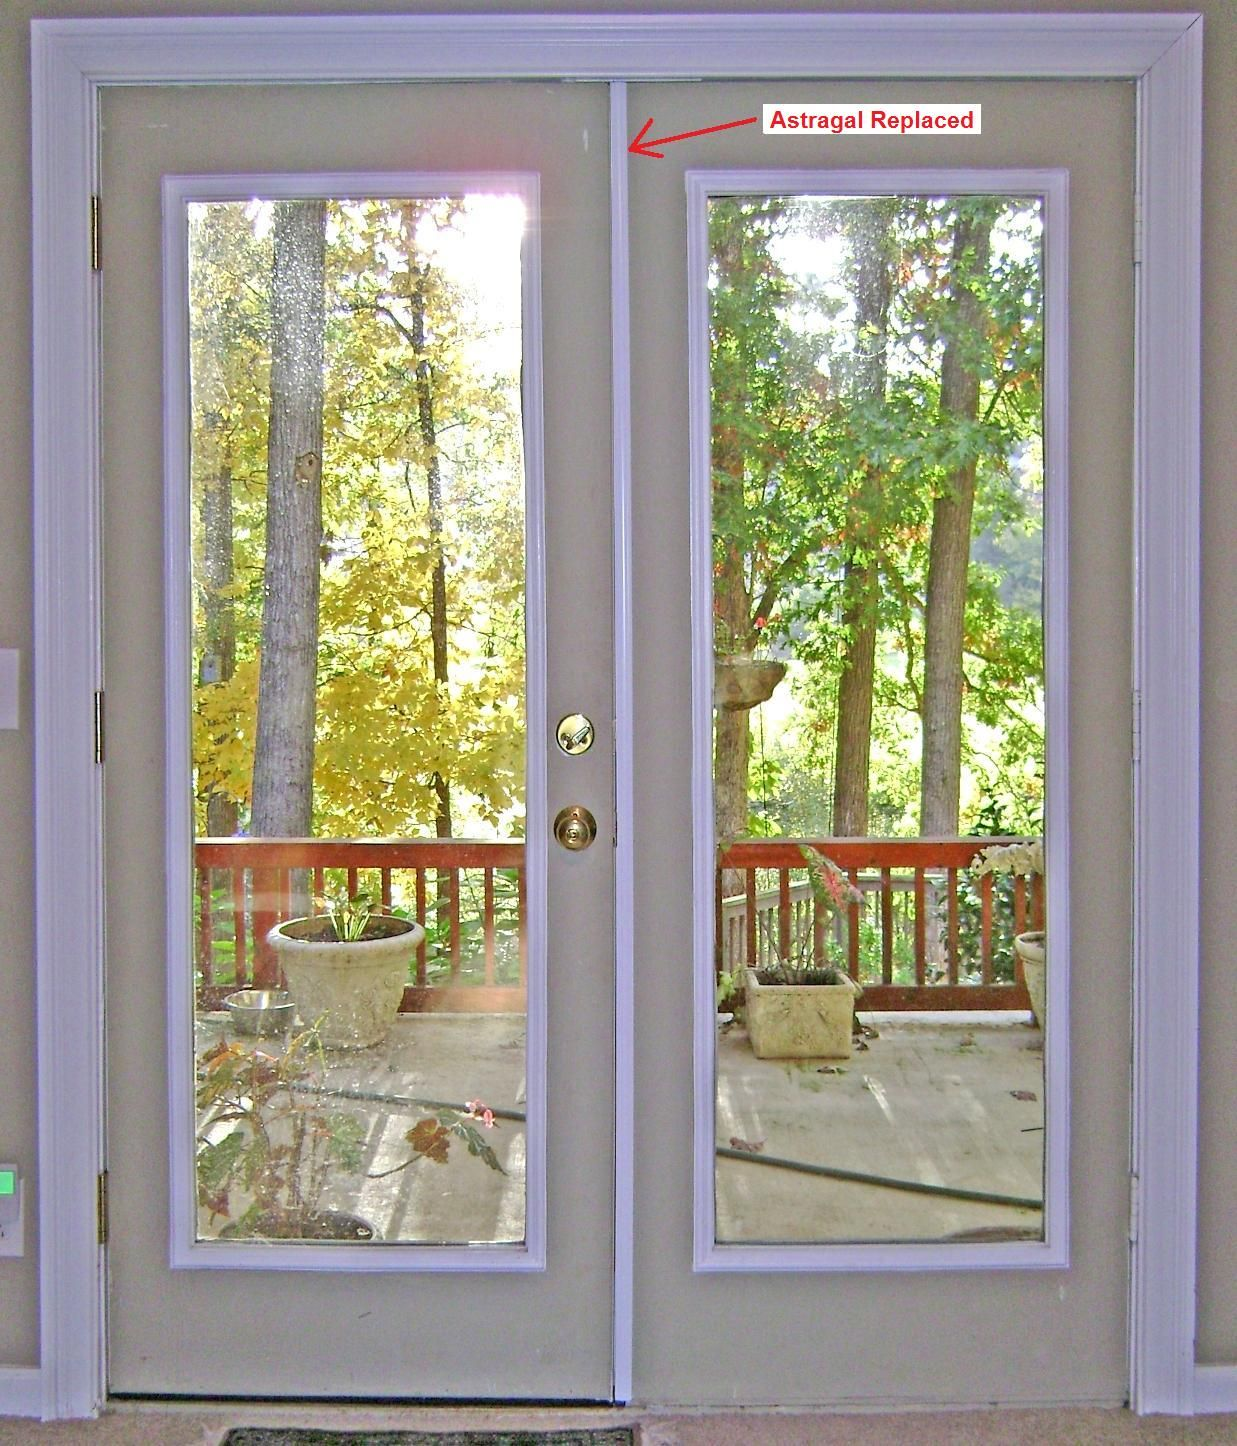 French Door Repair: Patio French Door Astragal Replacement - Part 1